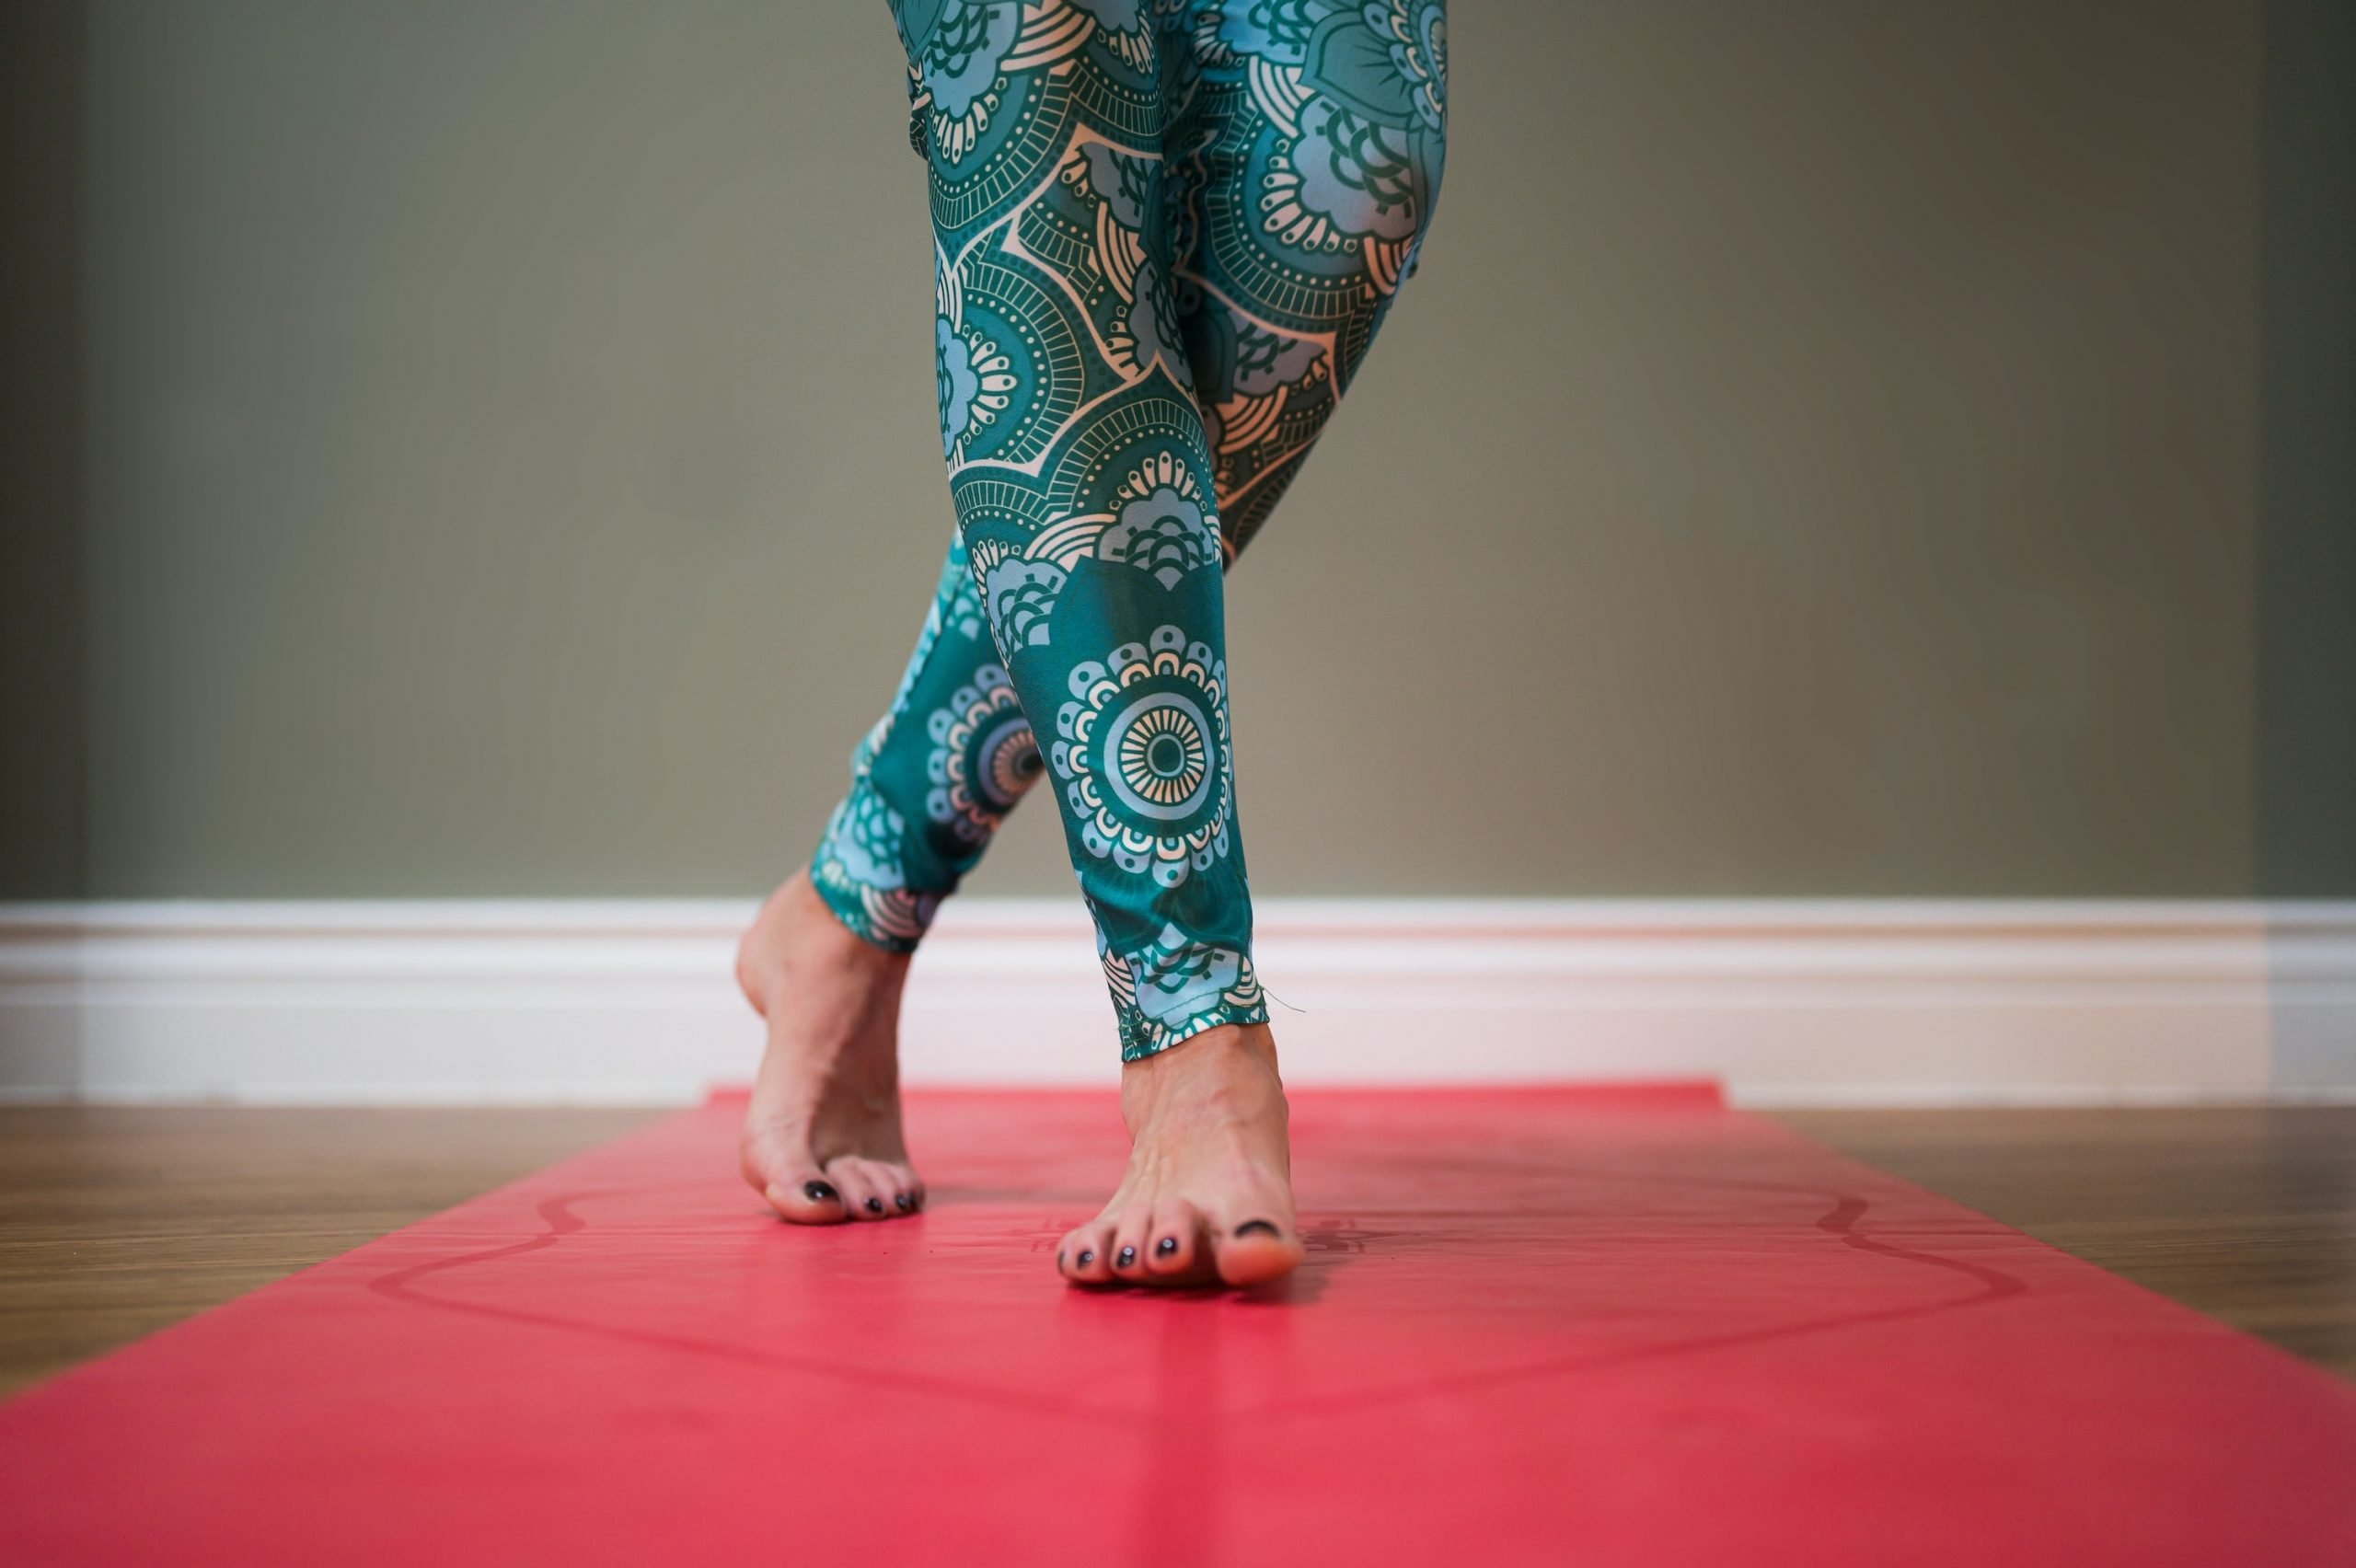 person in blue and white floral pants